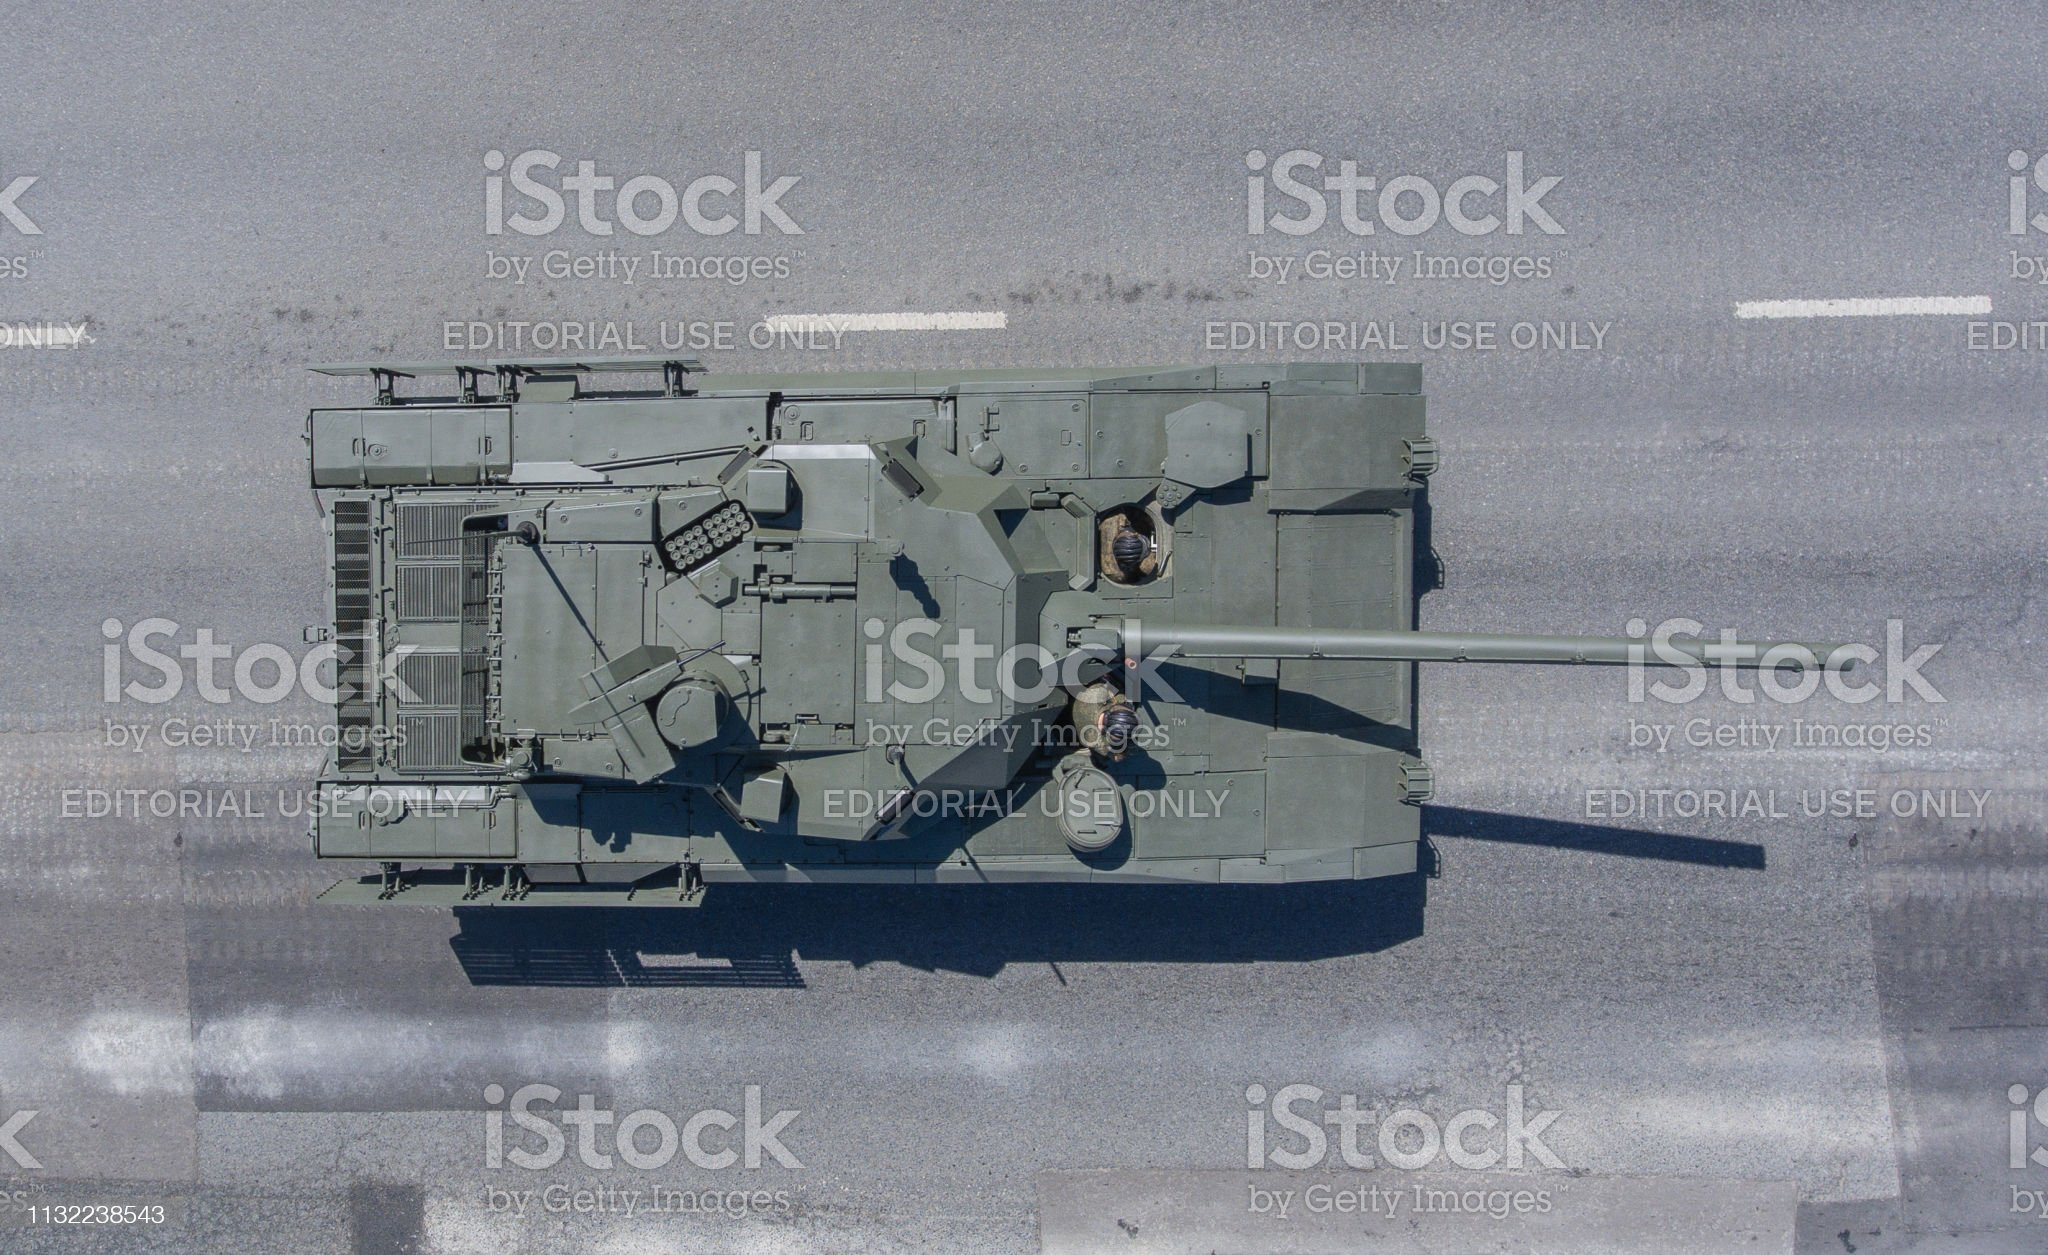 https://media.istockphoto.com/photos/tank-t14-armata-during-73th-victory-day-anniversary-picture-id1132238543?s=2048x2048